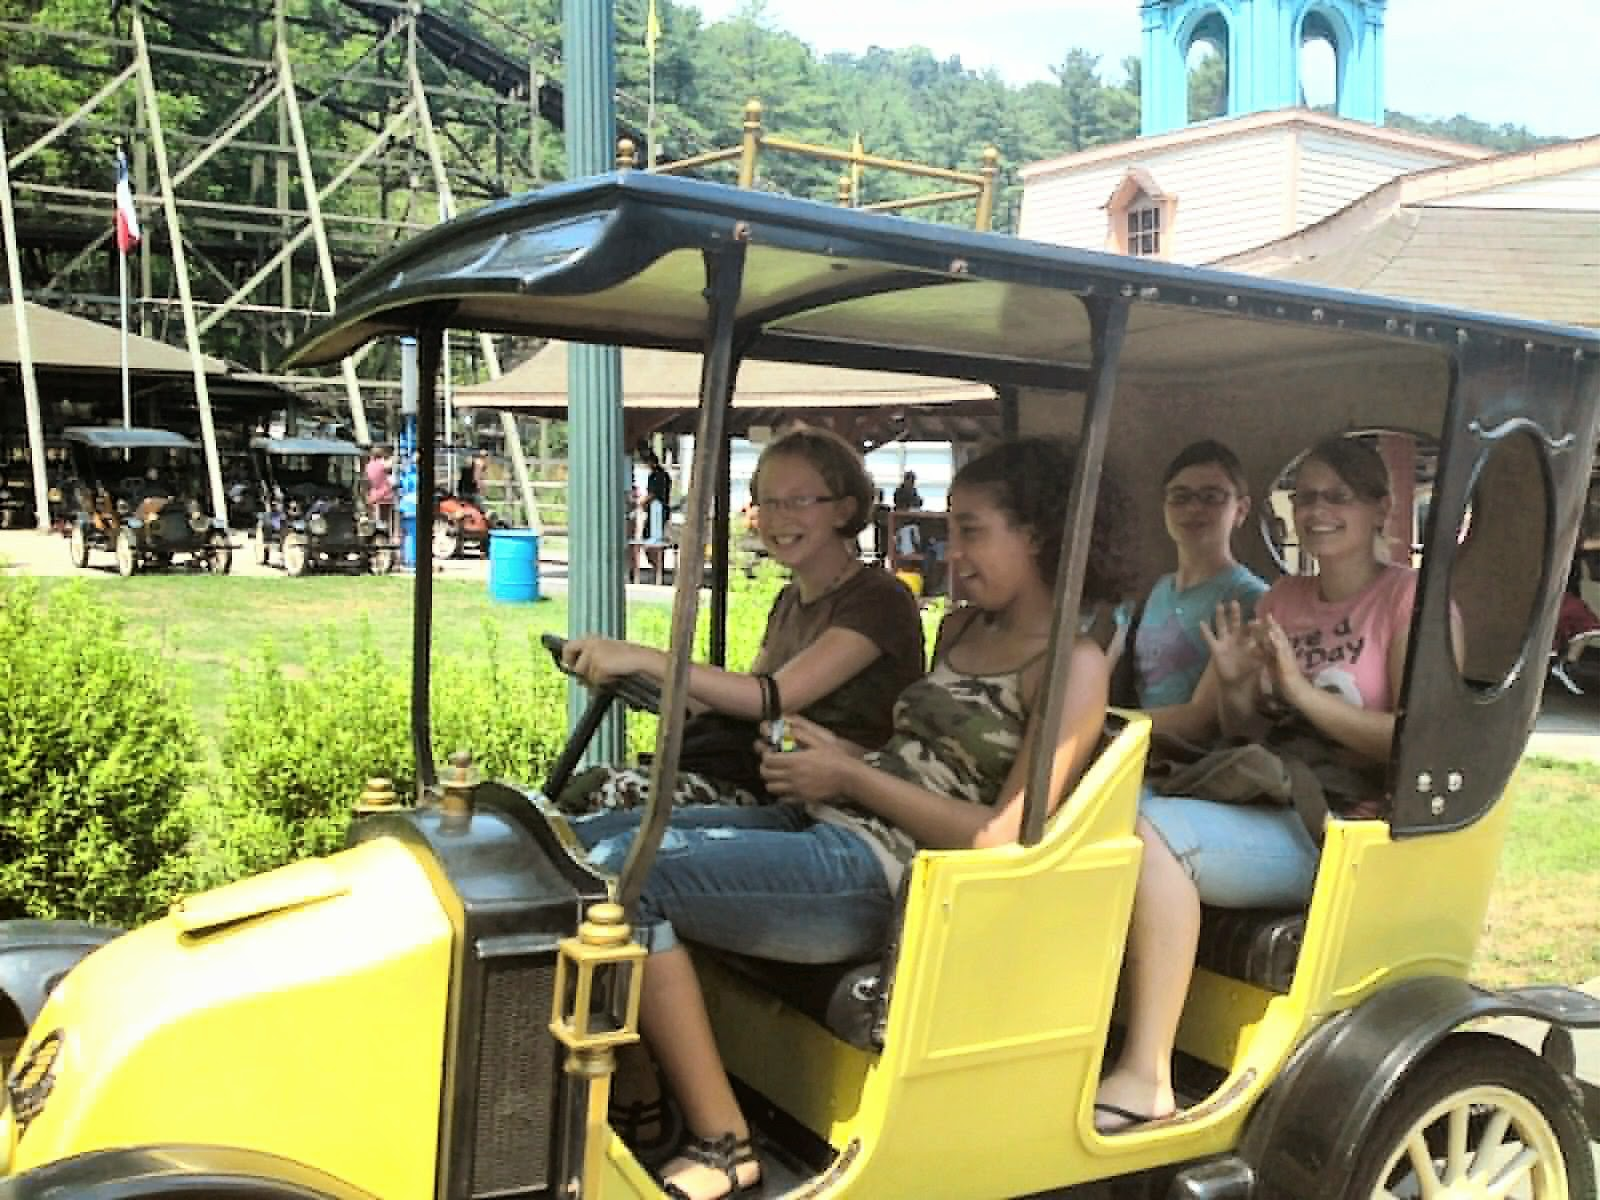 antique cars at Knoebels